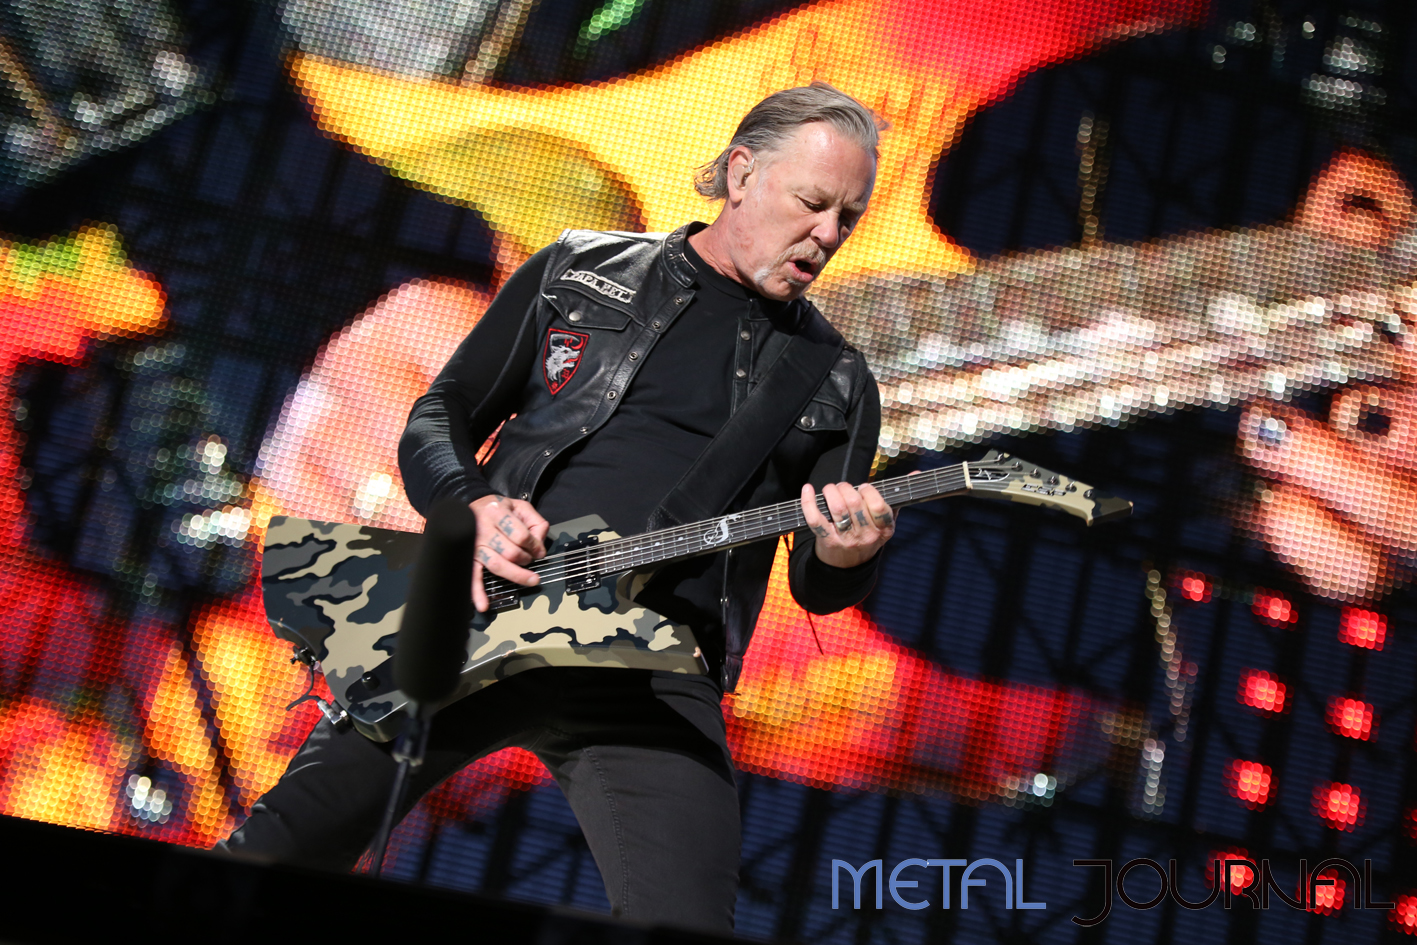 metallica metal journal 2019 foto 7